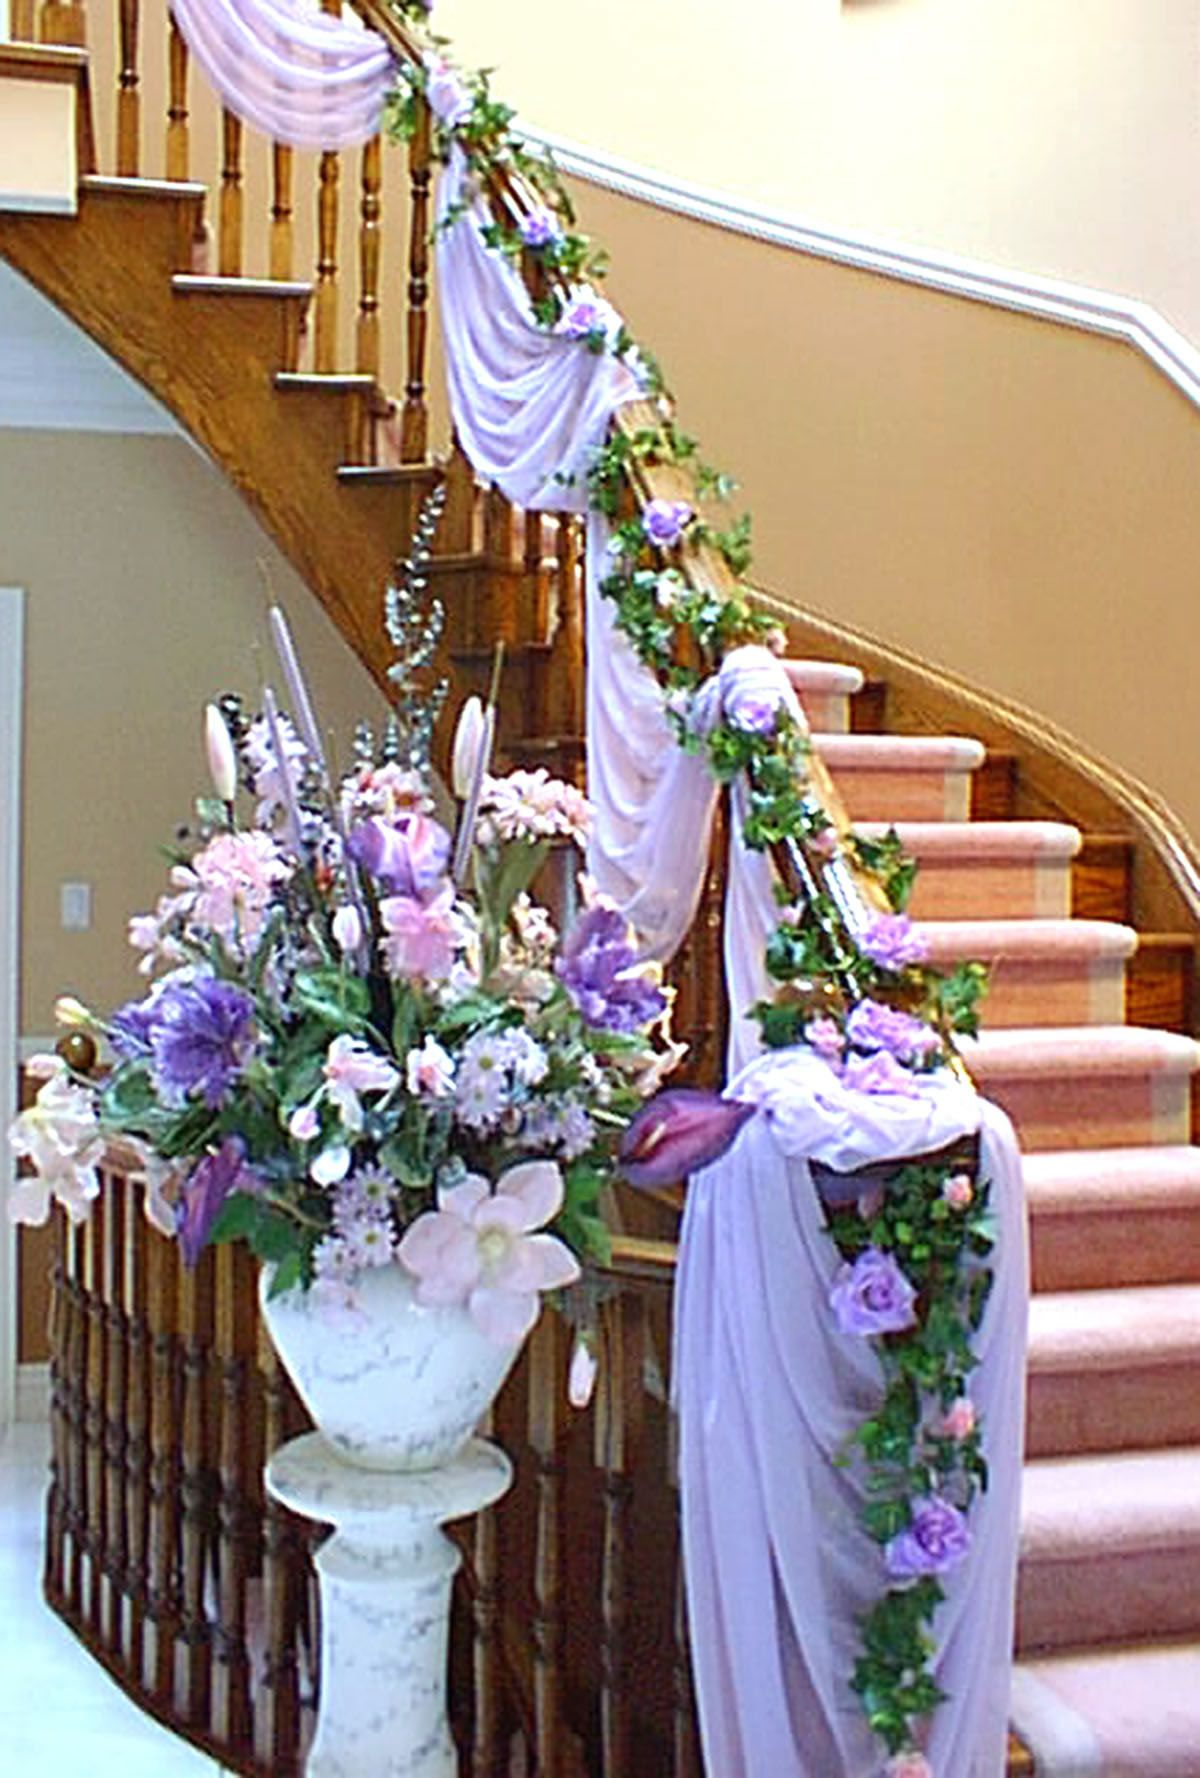 Wedding decoration ideas in the house  Decorate The House With Artificial Flowers for Your Home Inspiration